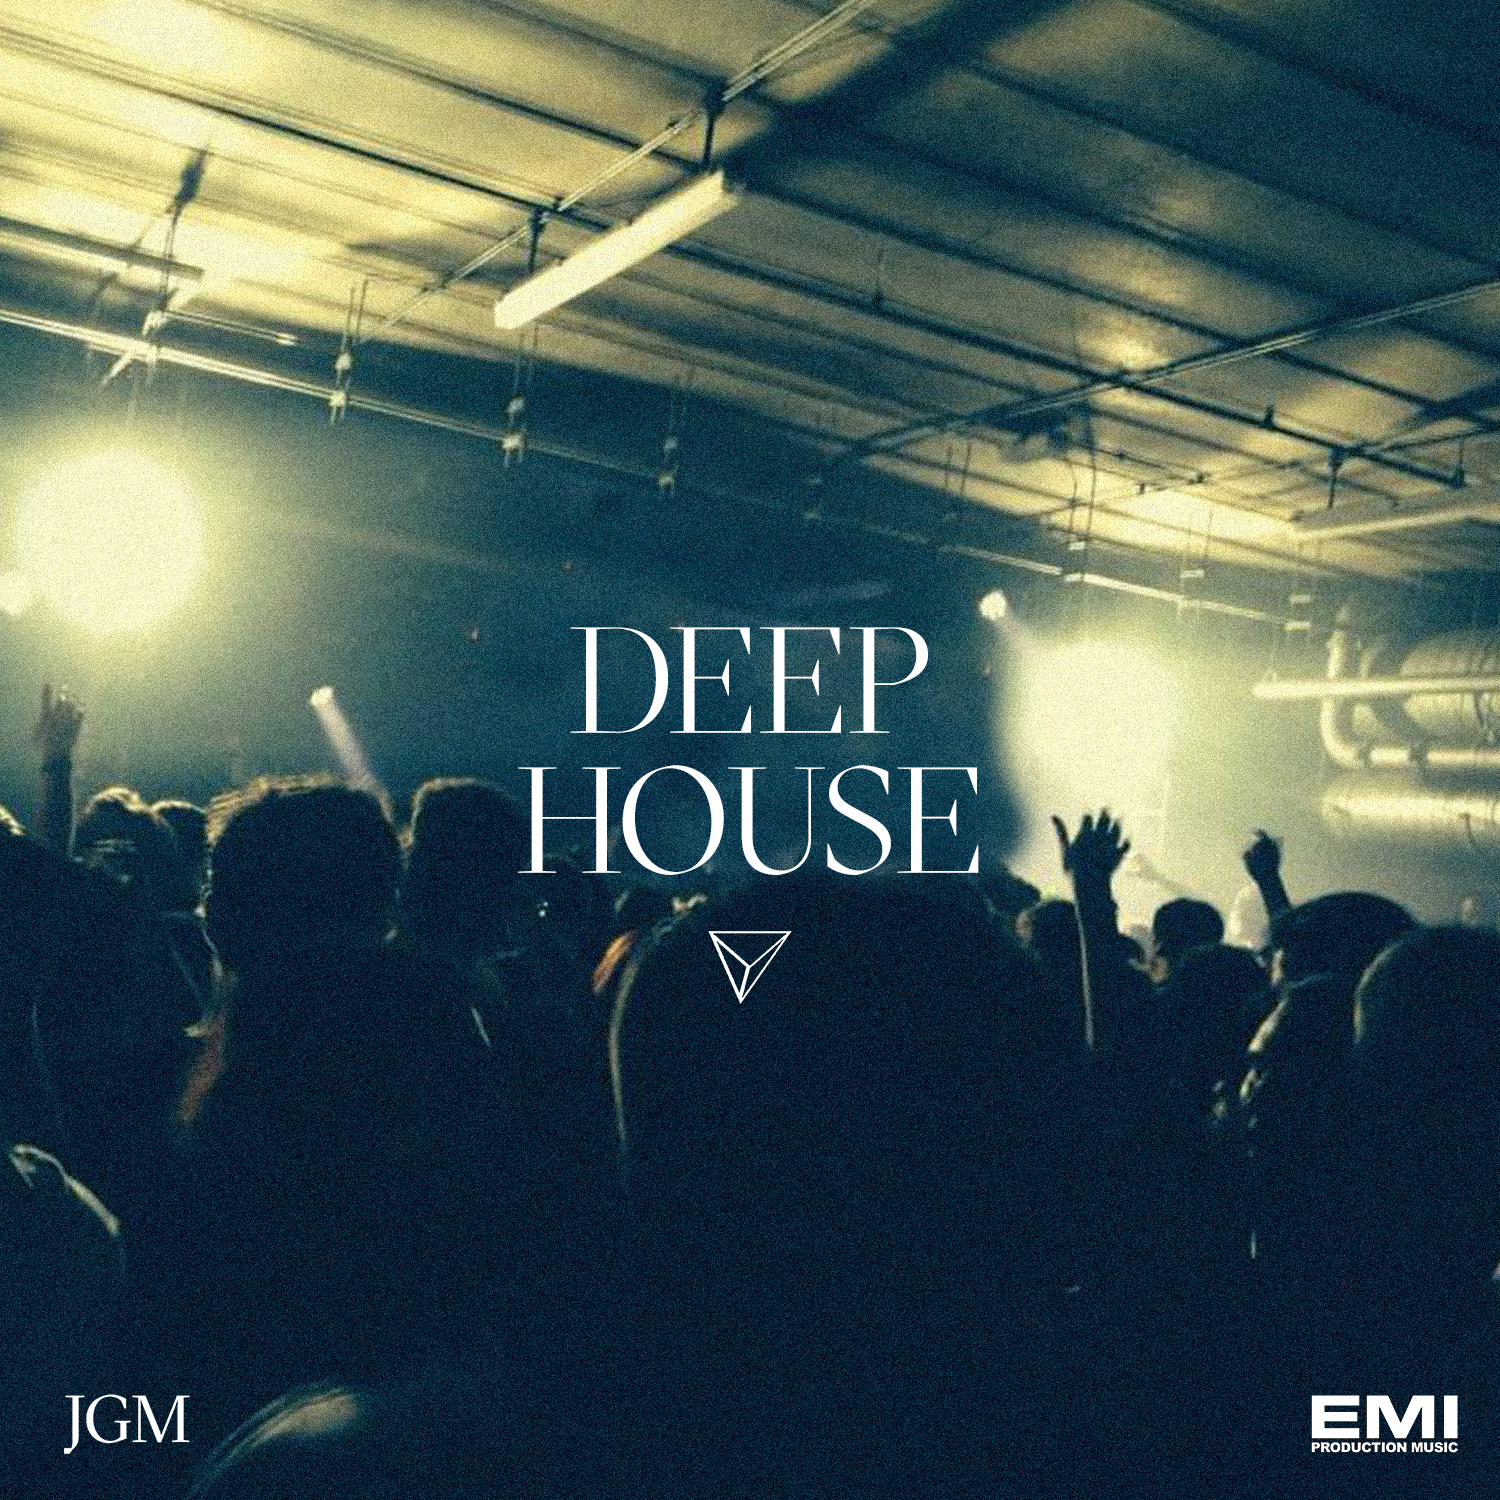 Deep house pictures posters news and videos on your for Deep house singles